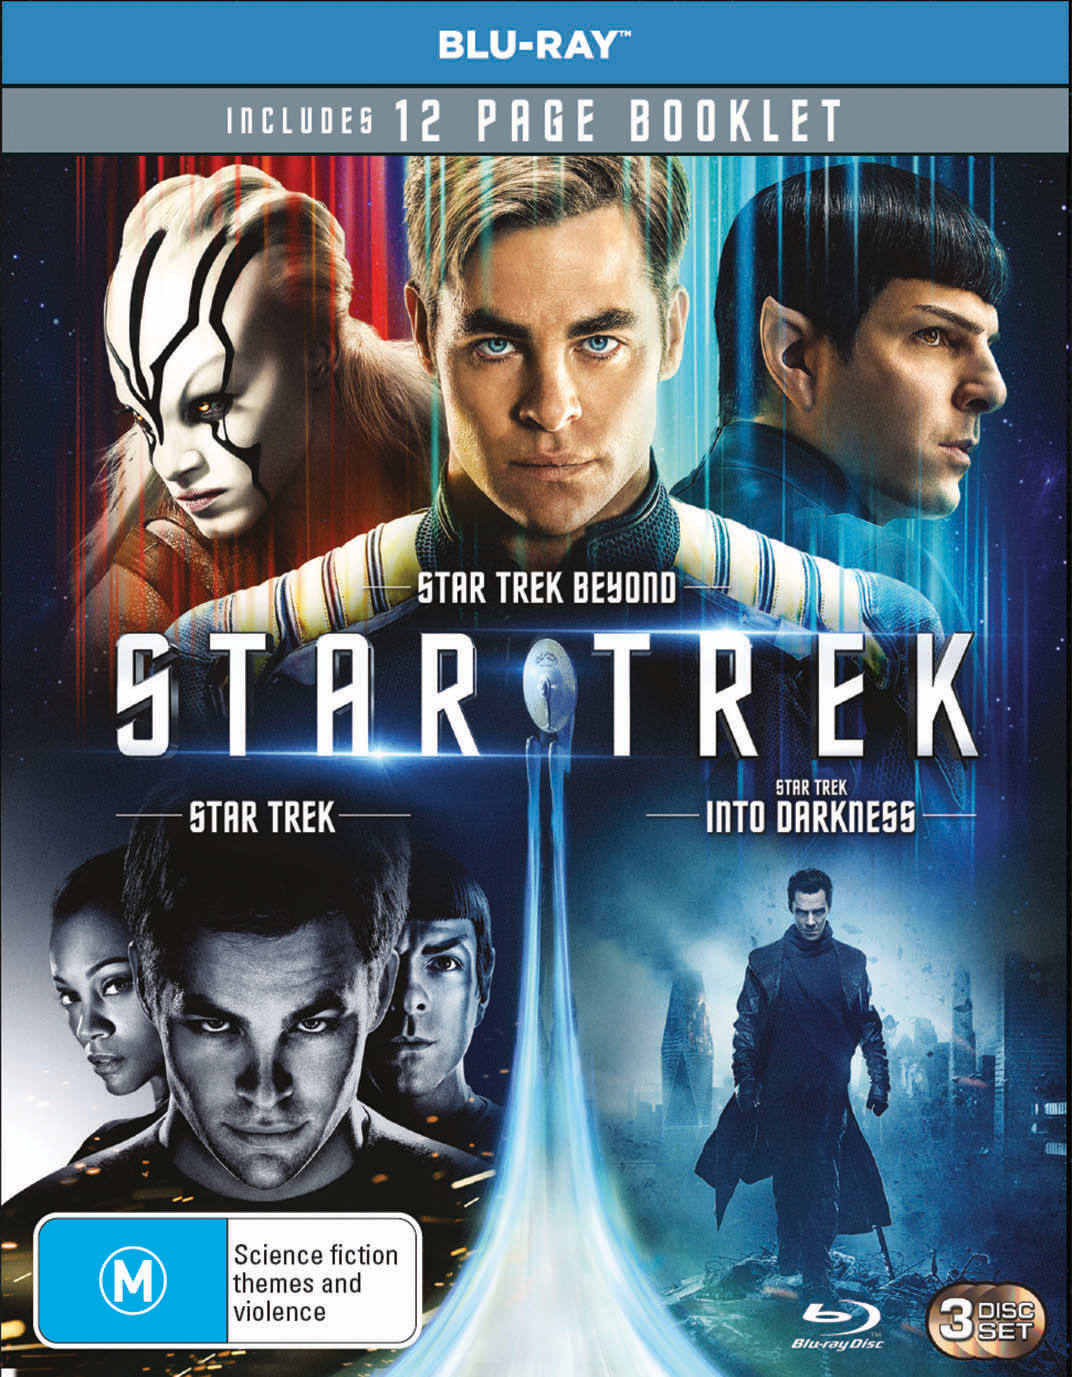 3 MOVIE FRANCHISE PACK (STAR TREK 2009 / STAR TREK INTO DARKNESS / STAR TREK BEYOND) - 3 DISC - BD [